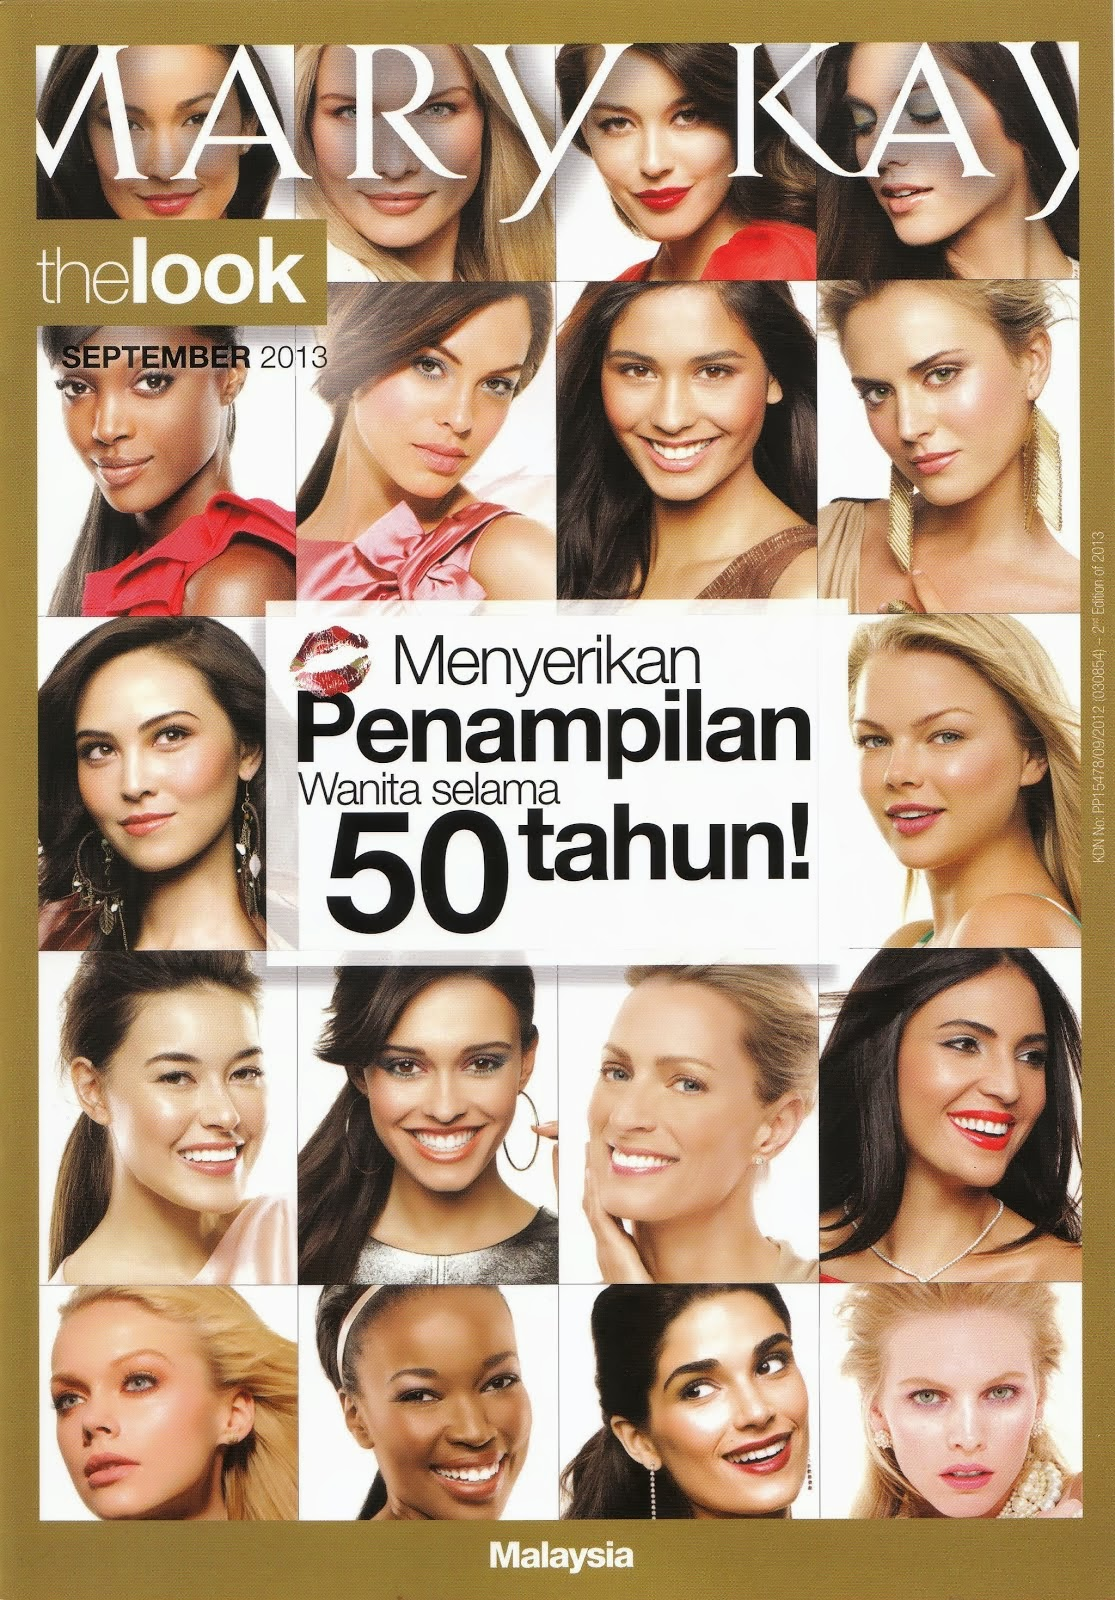 MARY KAY E-CATALOGUE